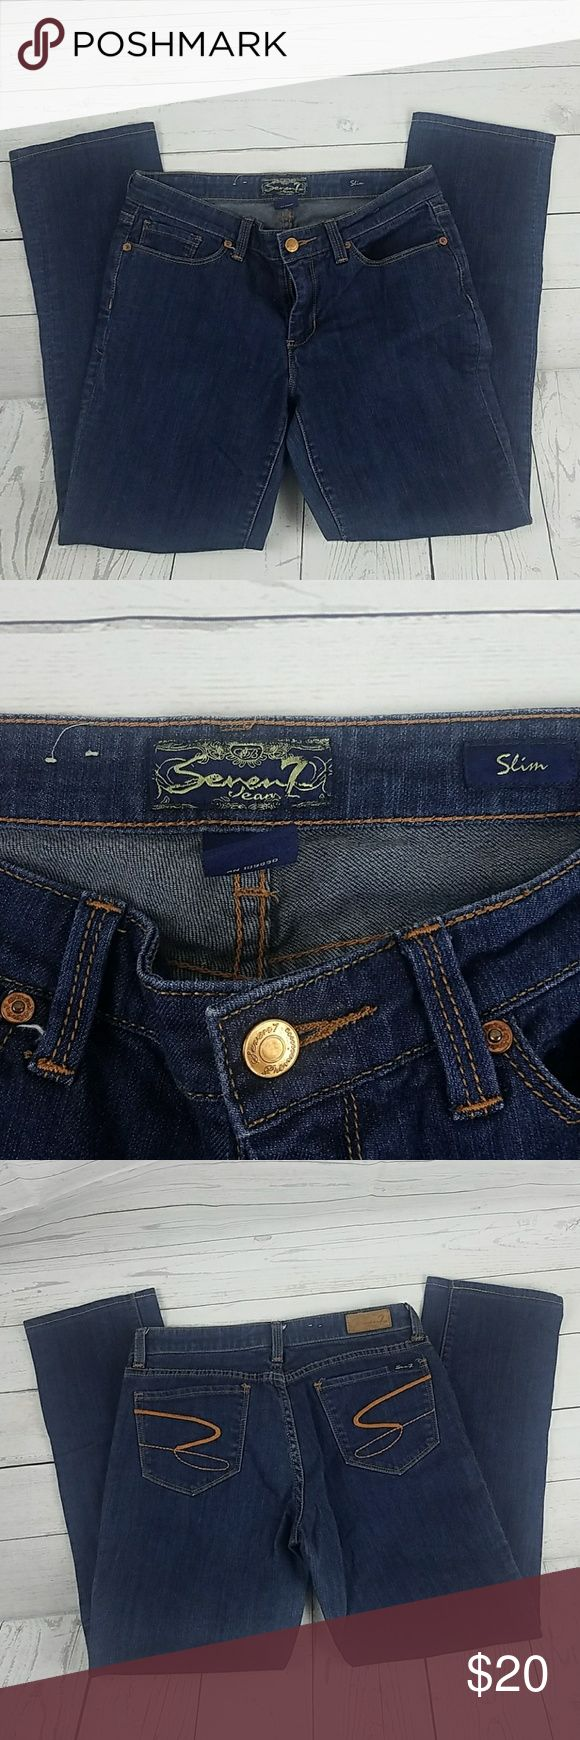 Seven7 Jean's Slim Size 29 Good condition. Gently Worn.  Inseam 28 Rise 8 Waist 14 inches Seven7 Jeans Skinny